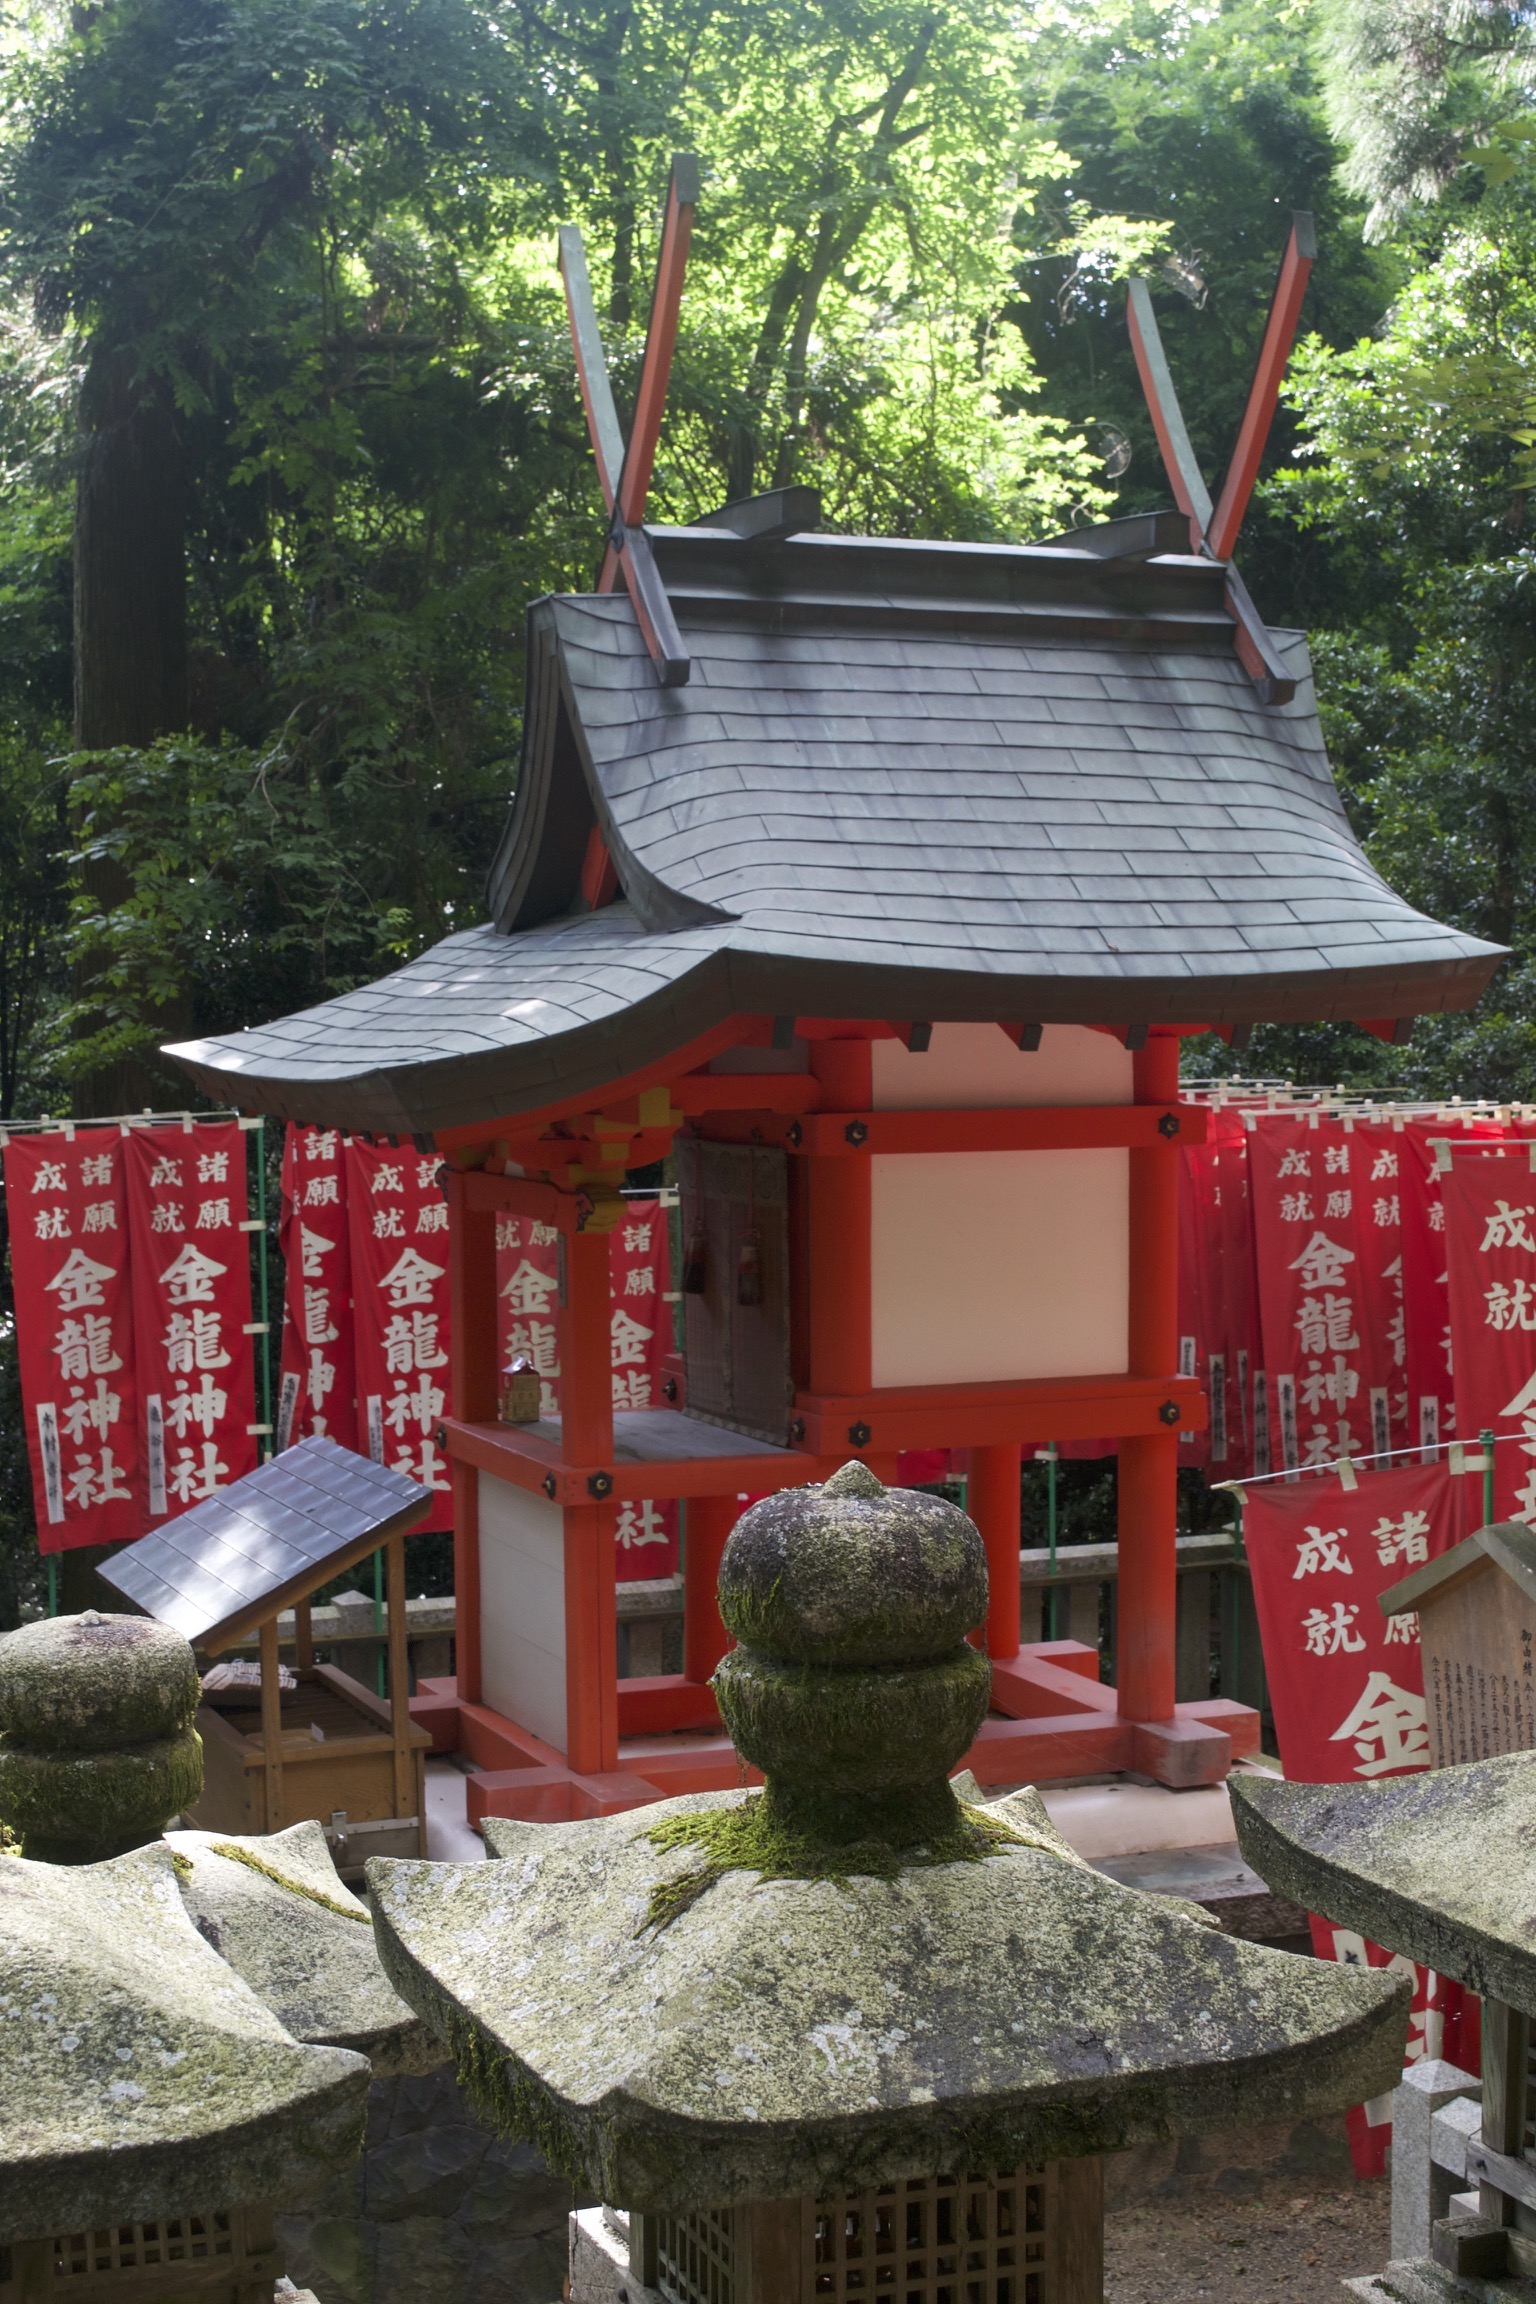 A white shrine with red trim and a slanted black roof sits before some mossy stone monuments.  Red banners with white lettering hang before the trees in the background.